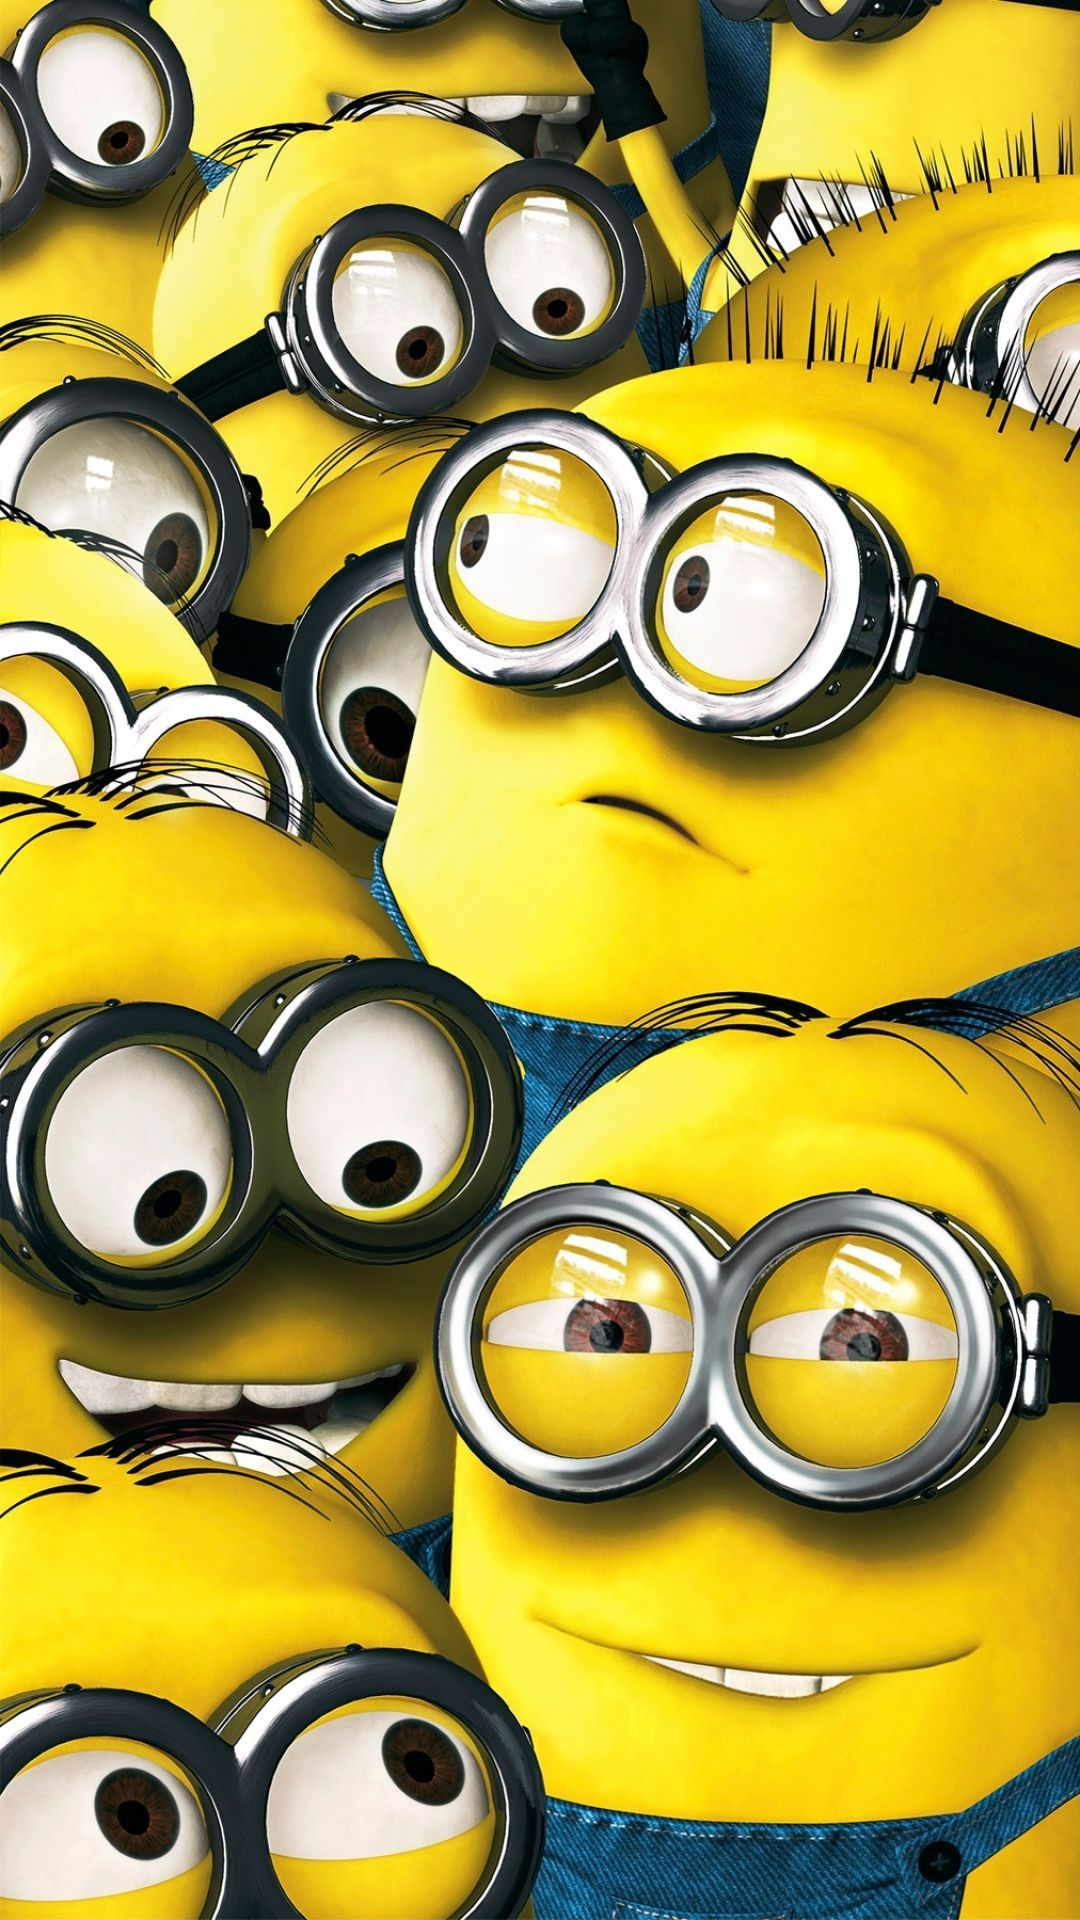 40 Gambar Wallpaper Hd Iphone Minions terbaru 2020 di 2020